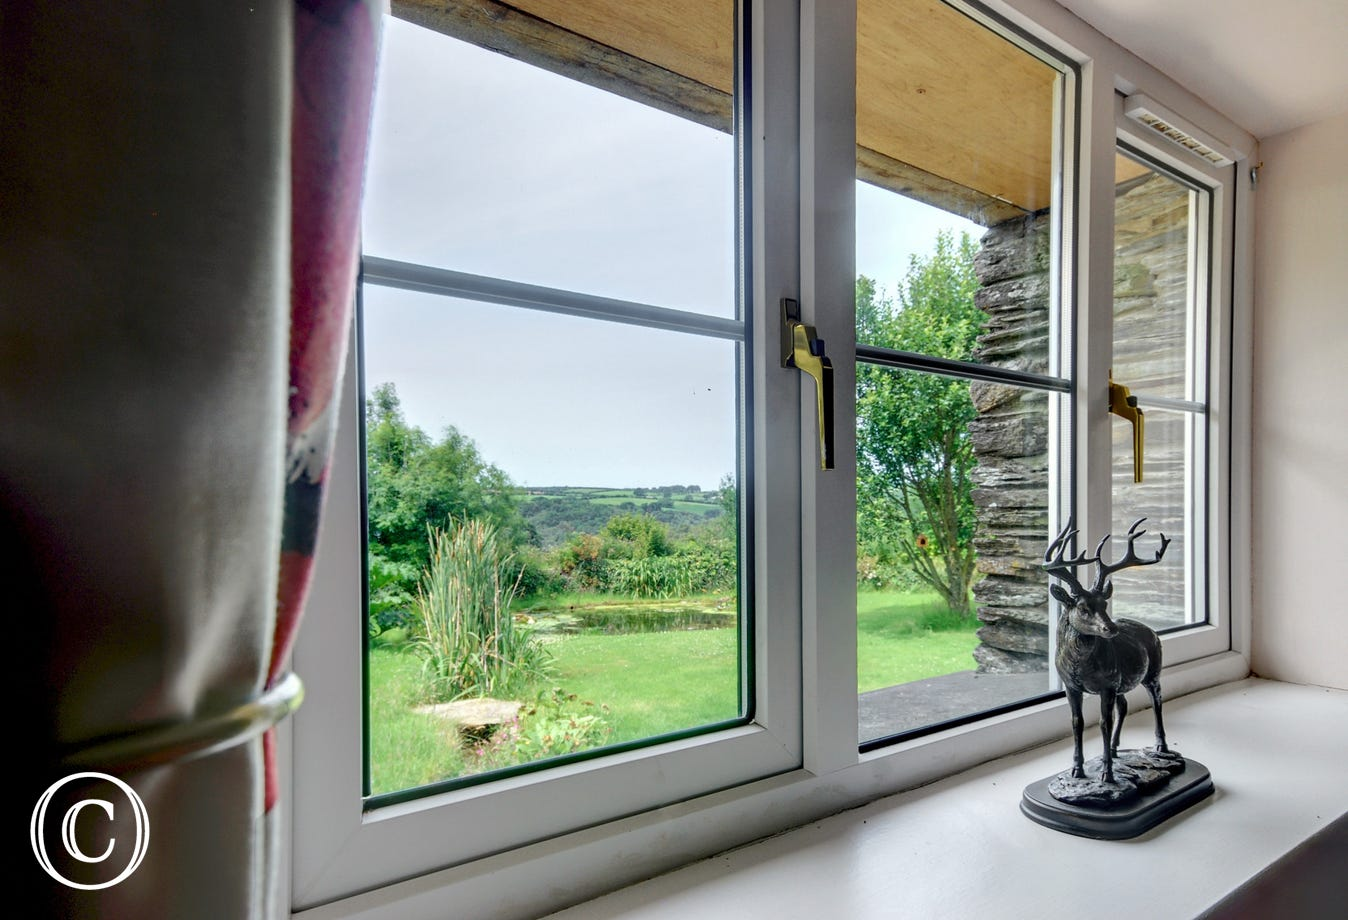 Wonderful views of the garden and surrounding countryside